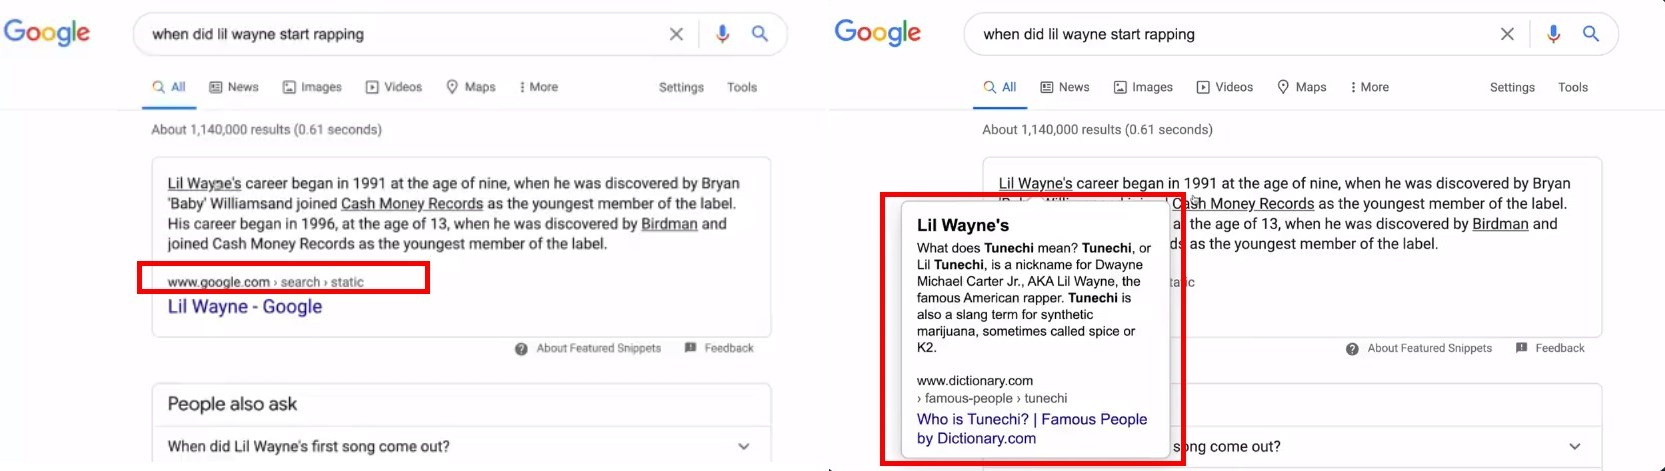 Google Tests Featured Snippet With Google Hosted Content With Publisher Info Hidden in Hover Over Modal Window